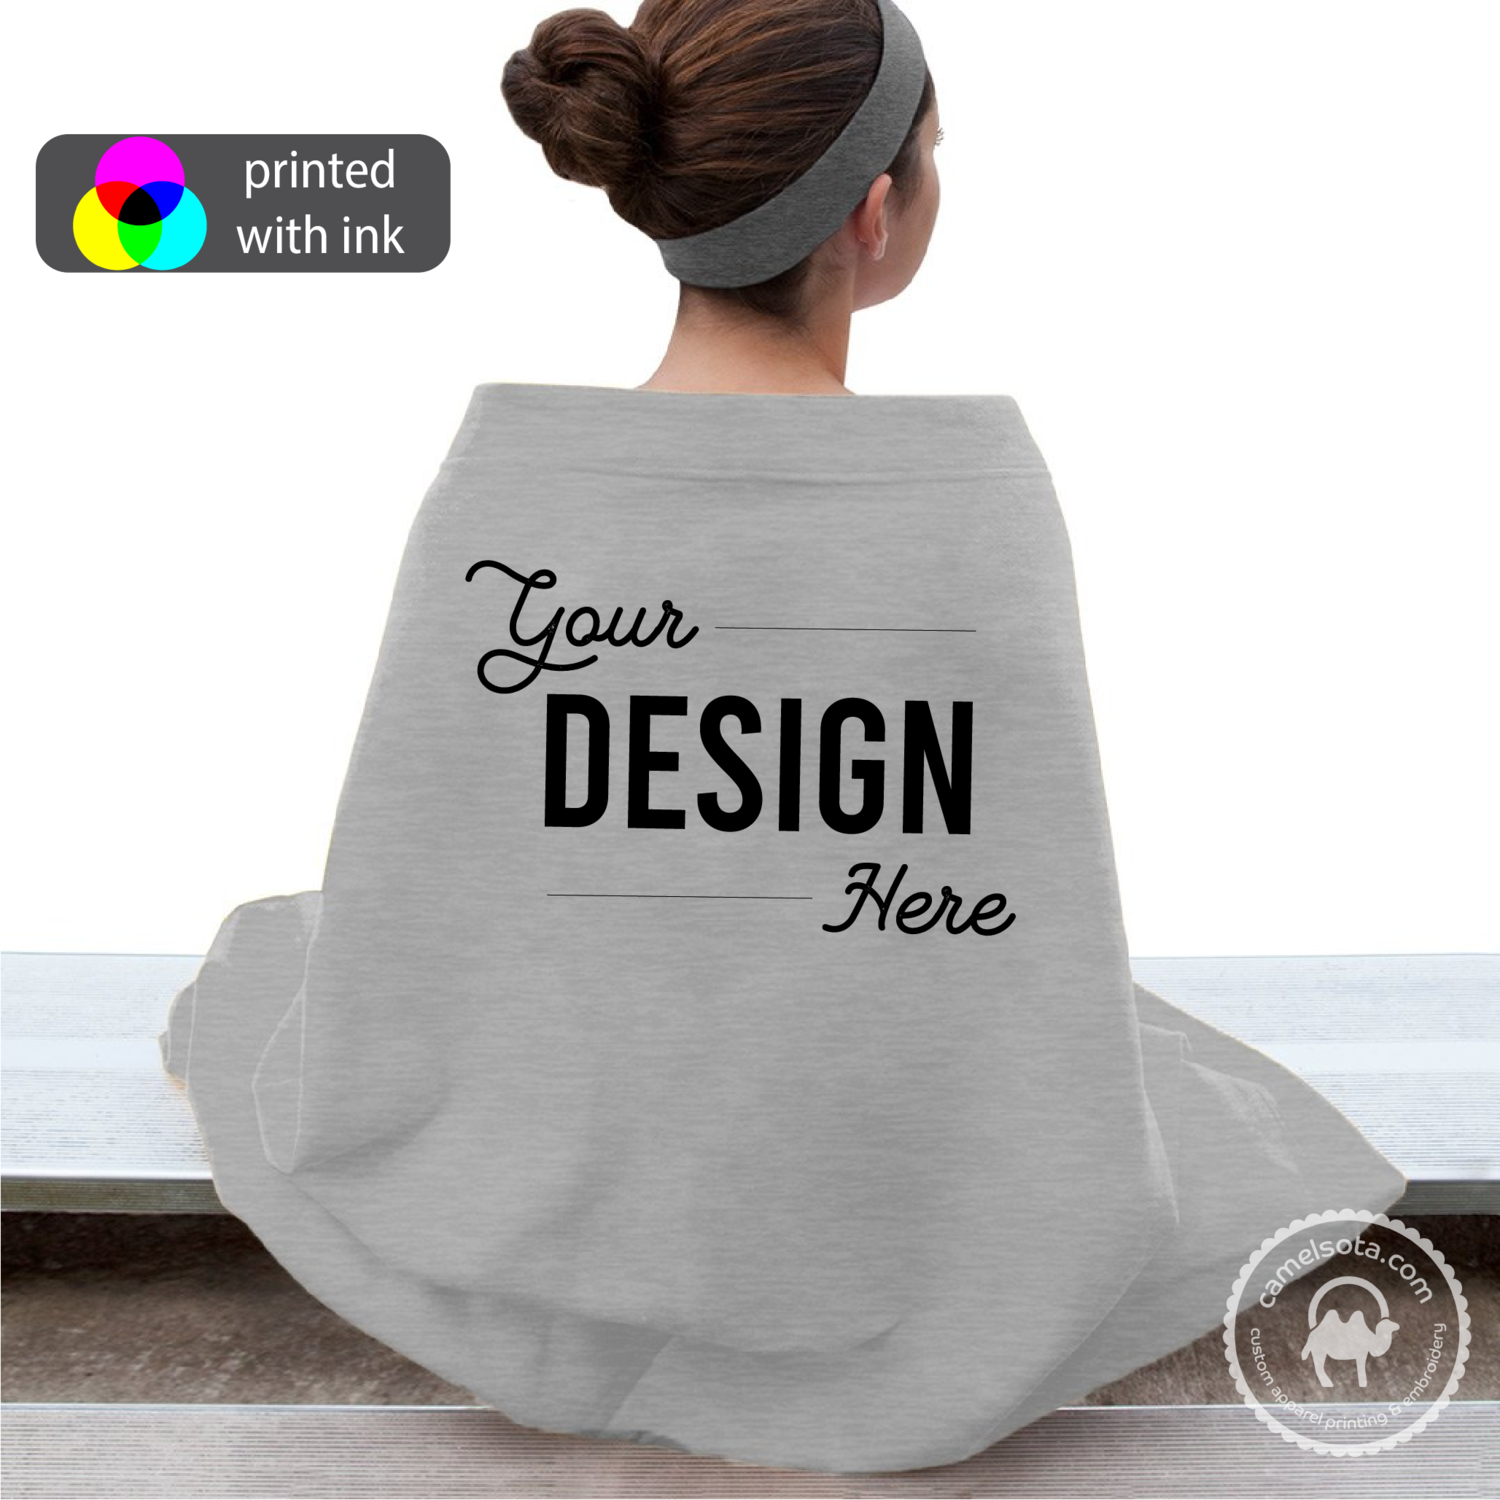 Custom Design Printed on Port & Company Sweatshirt Blanket - Grey